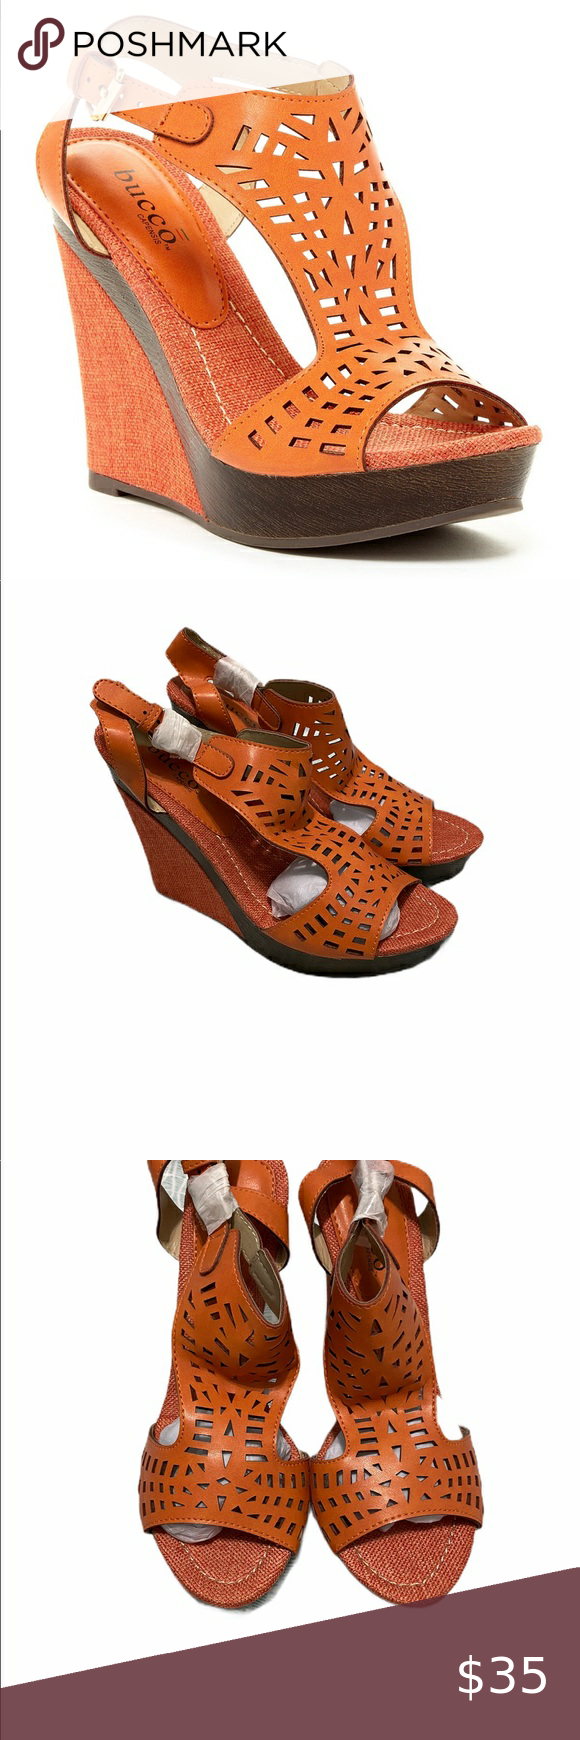 Orange Laser Cut Sandal Wedge